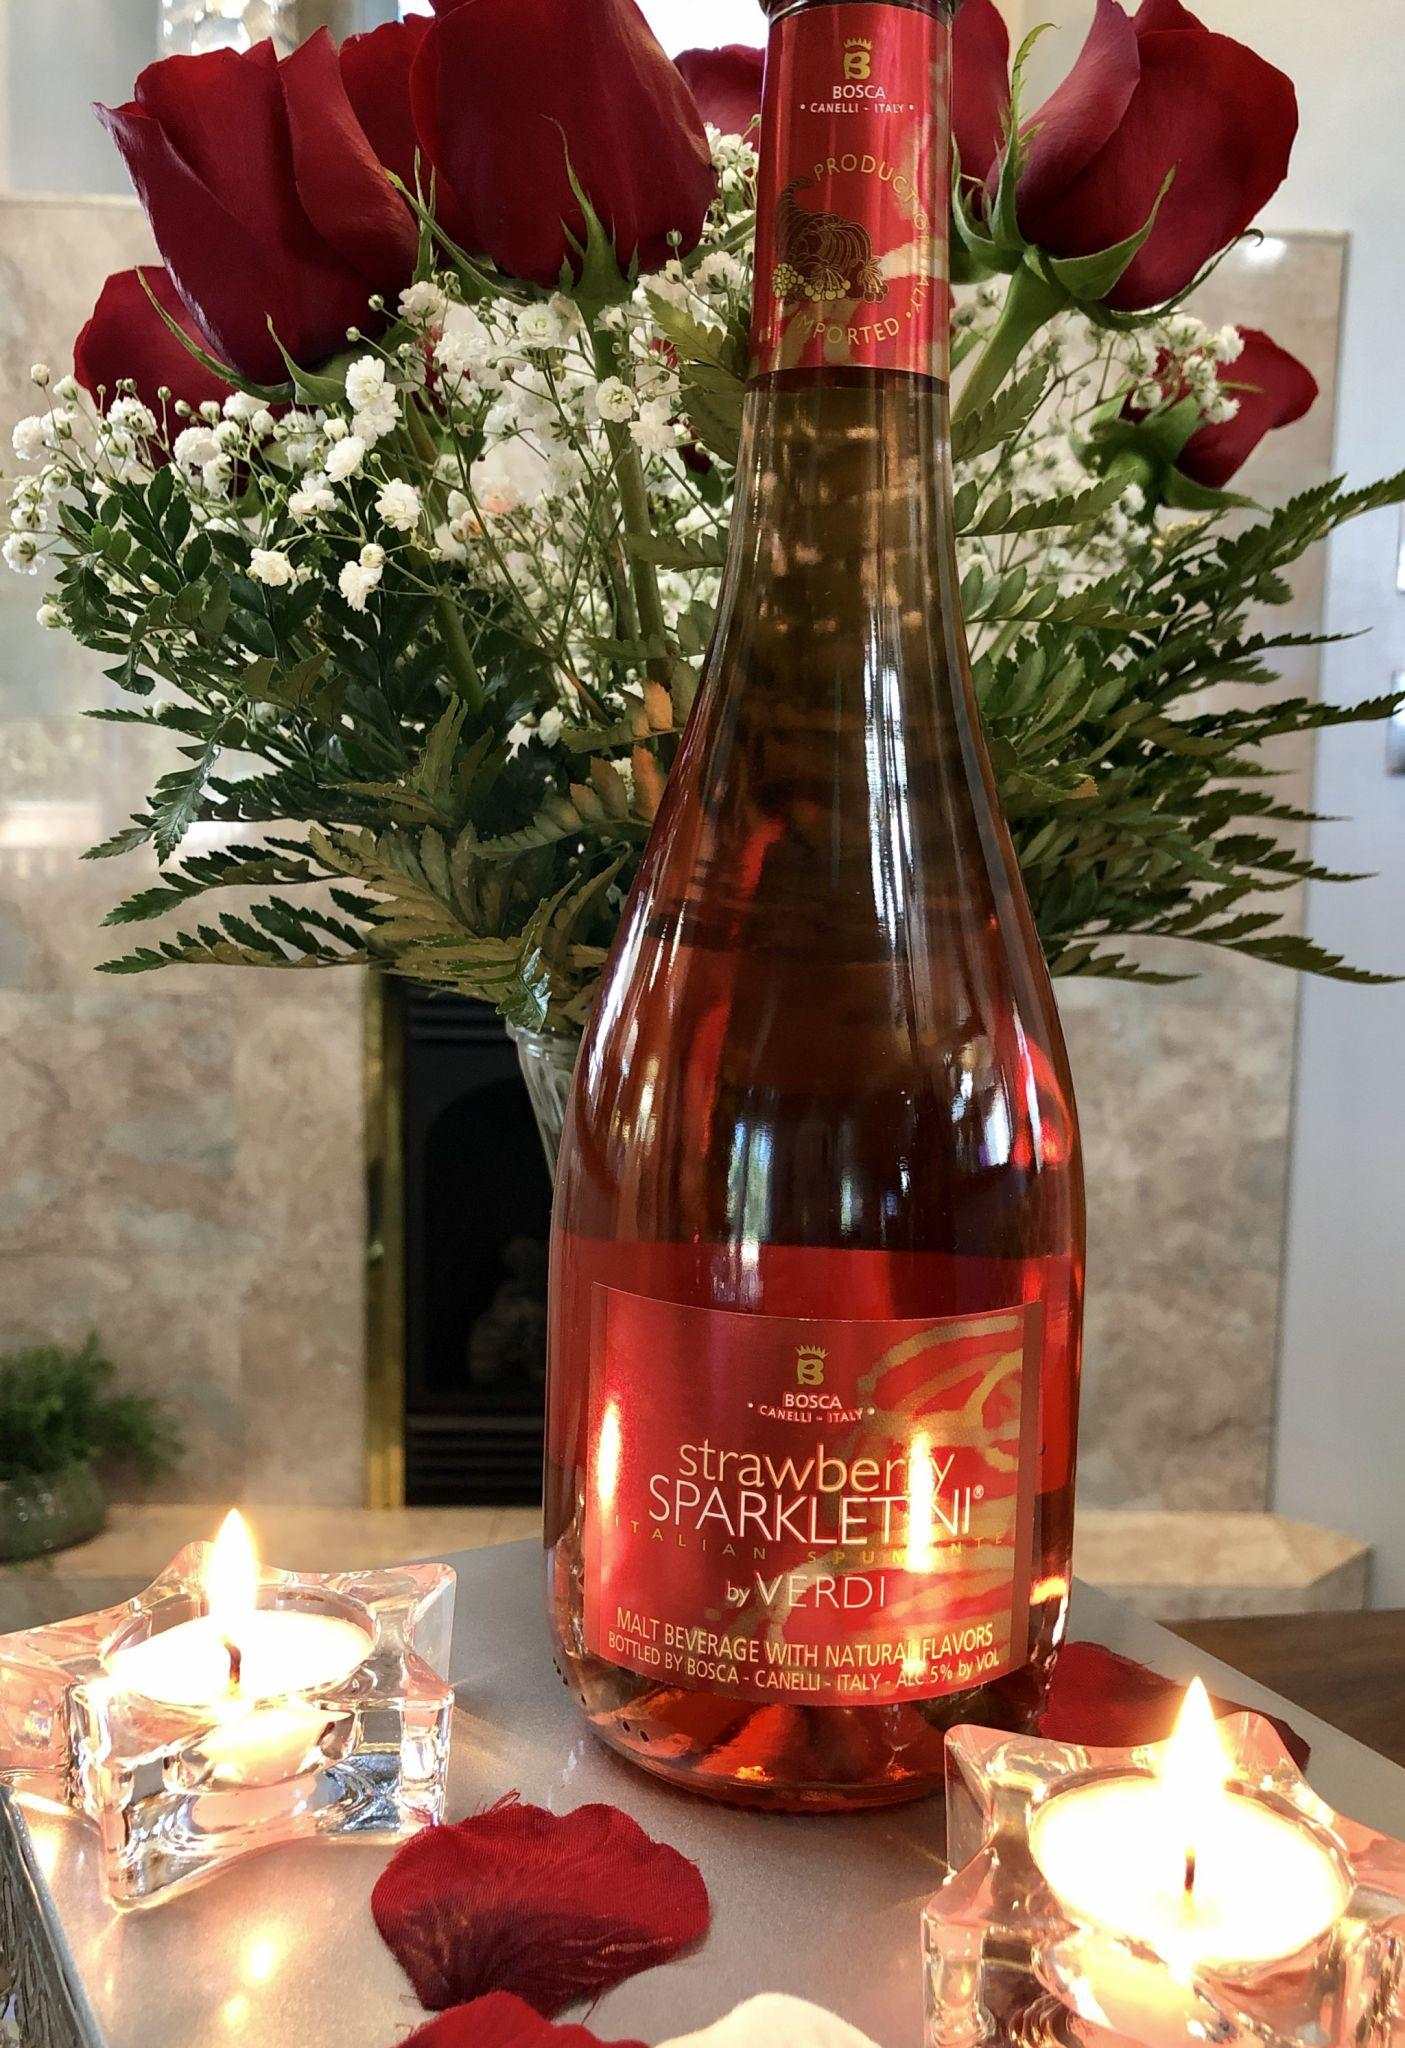 Donnas-Premier-Lodging-Champagne-and-Roses.jpg?mtime=20191026112029#asset:1404